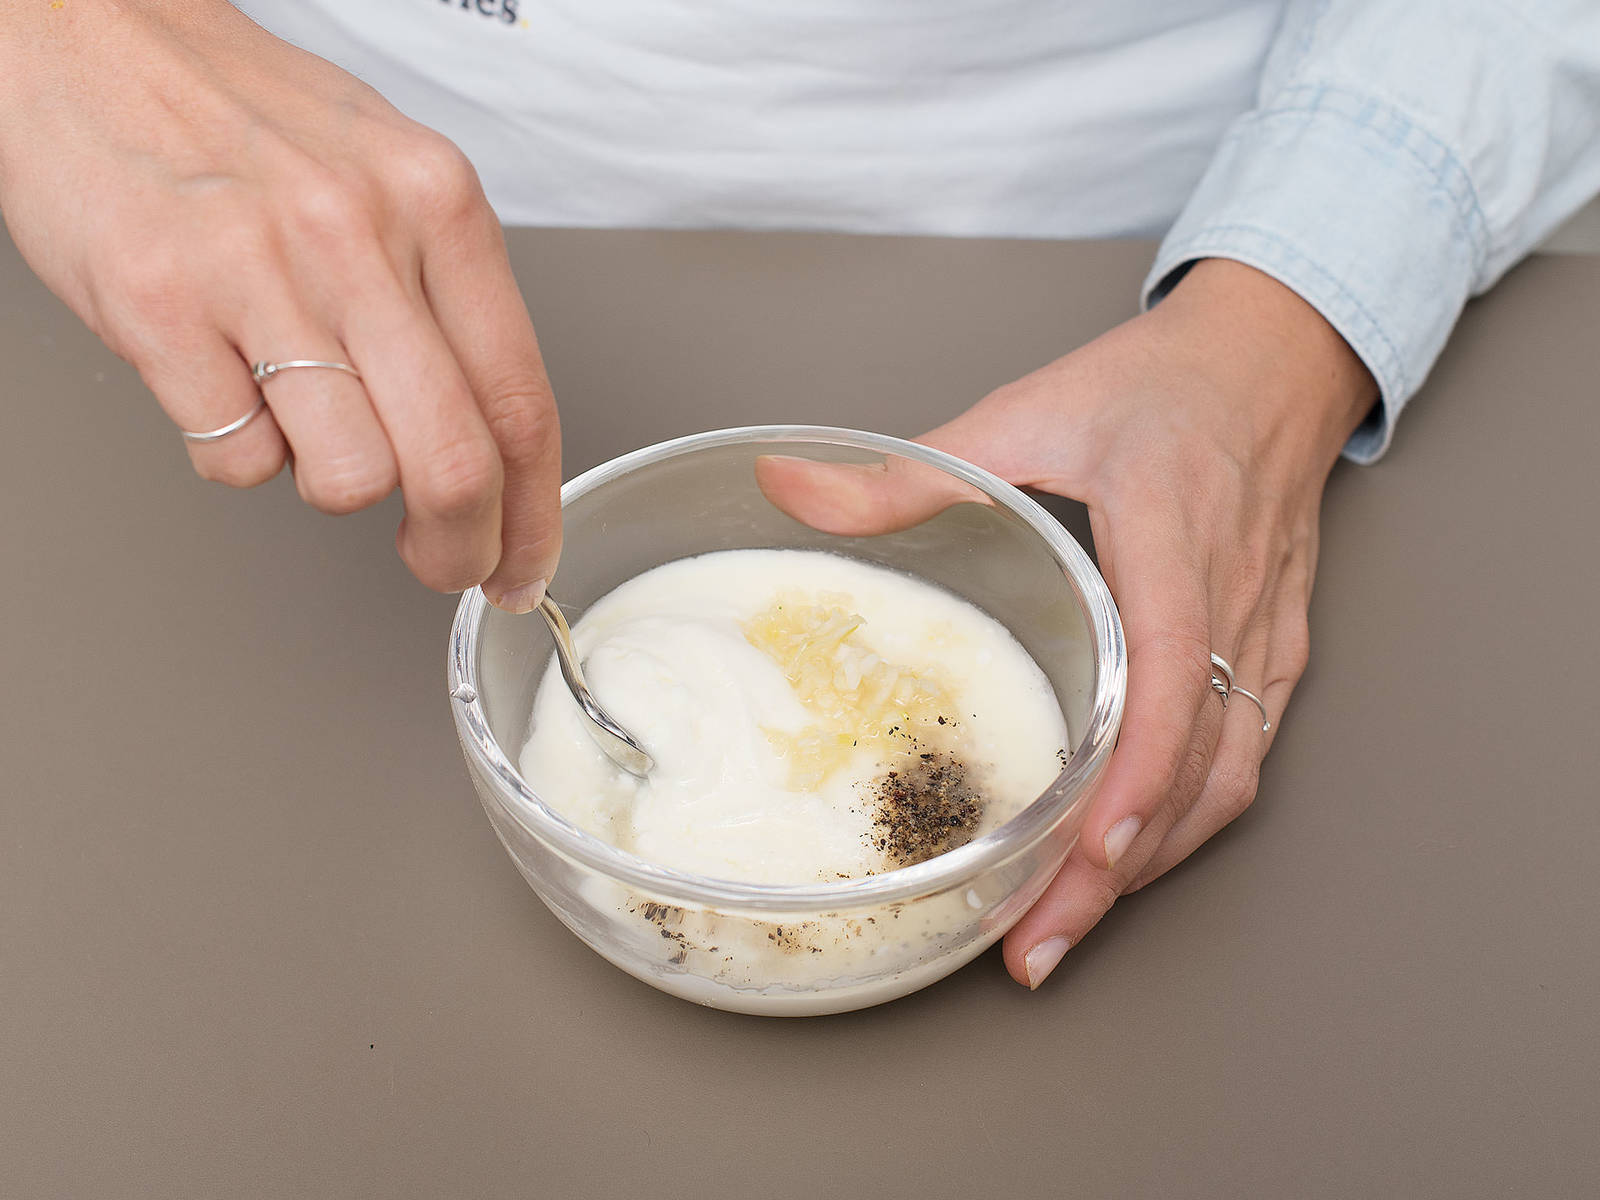 Mix yogurt with remaining garlic and lemon juice in a small bowl. Season with salt and pepper to taste. Serve lentils at room temperature with yogurt sauce on the side and serve with warm pita bread or other flatbread. Enjoy!